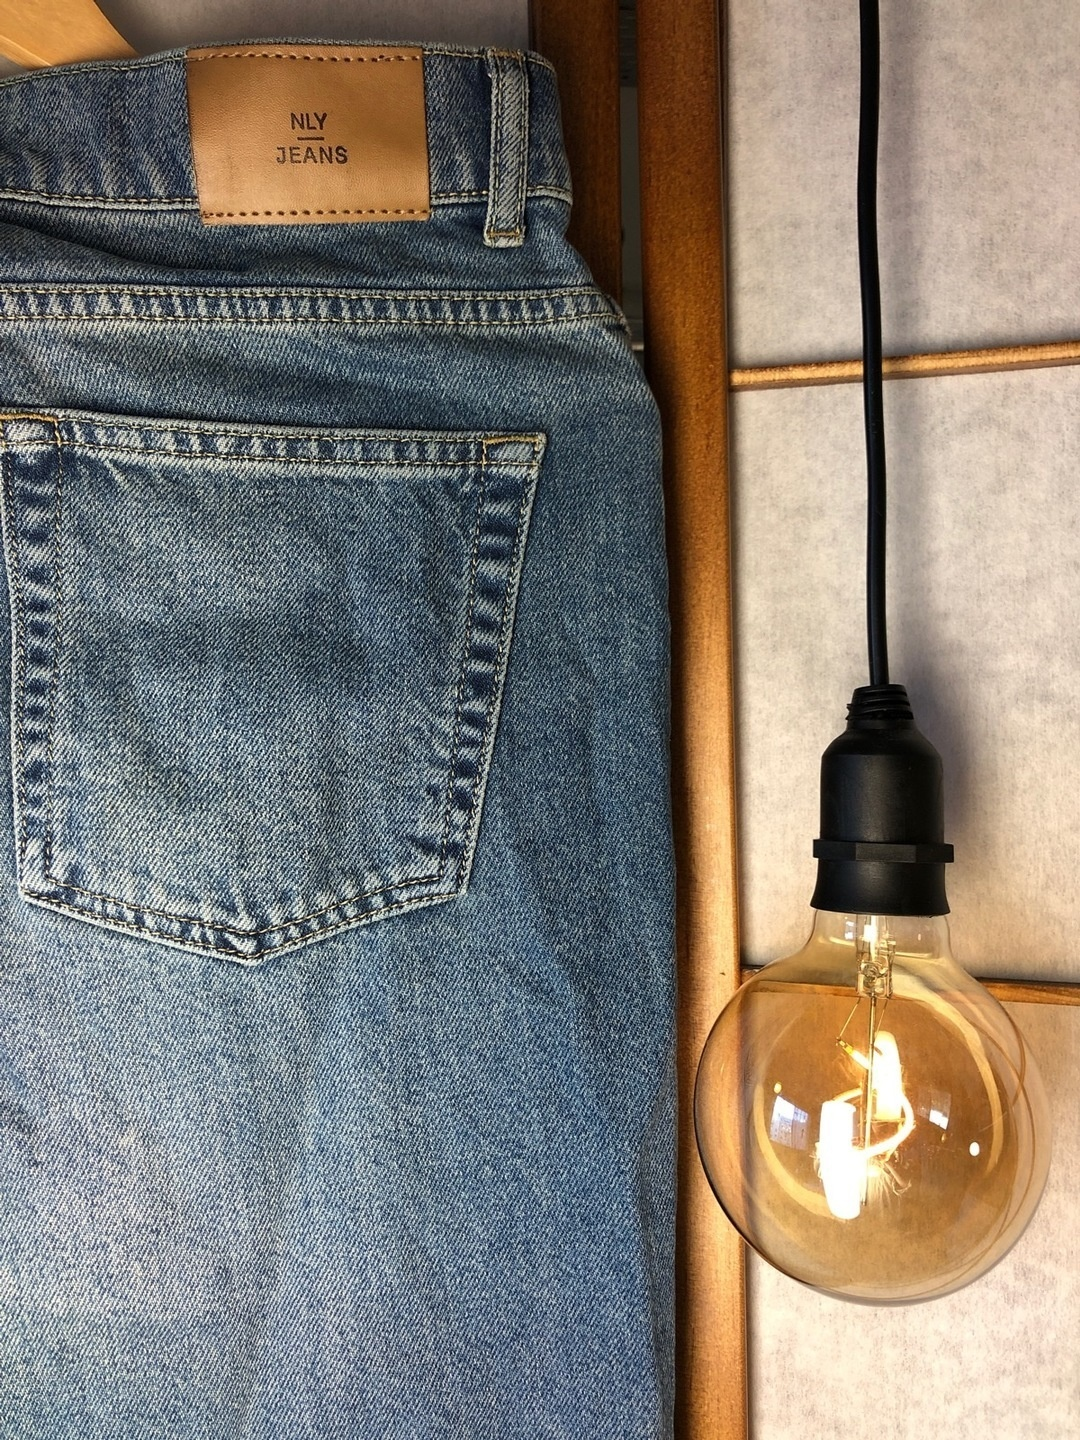 Women's trousers & jeans - NLY-JEANS photo 2